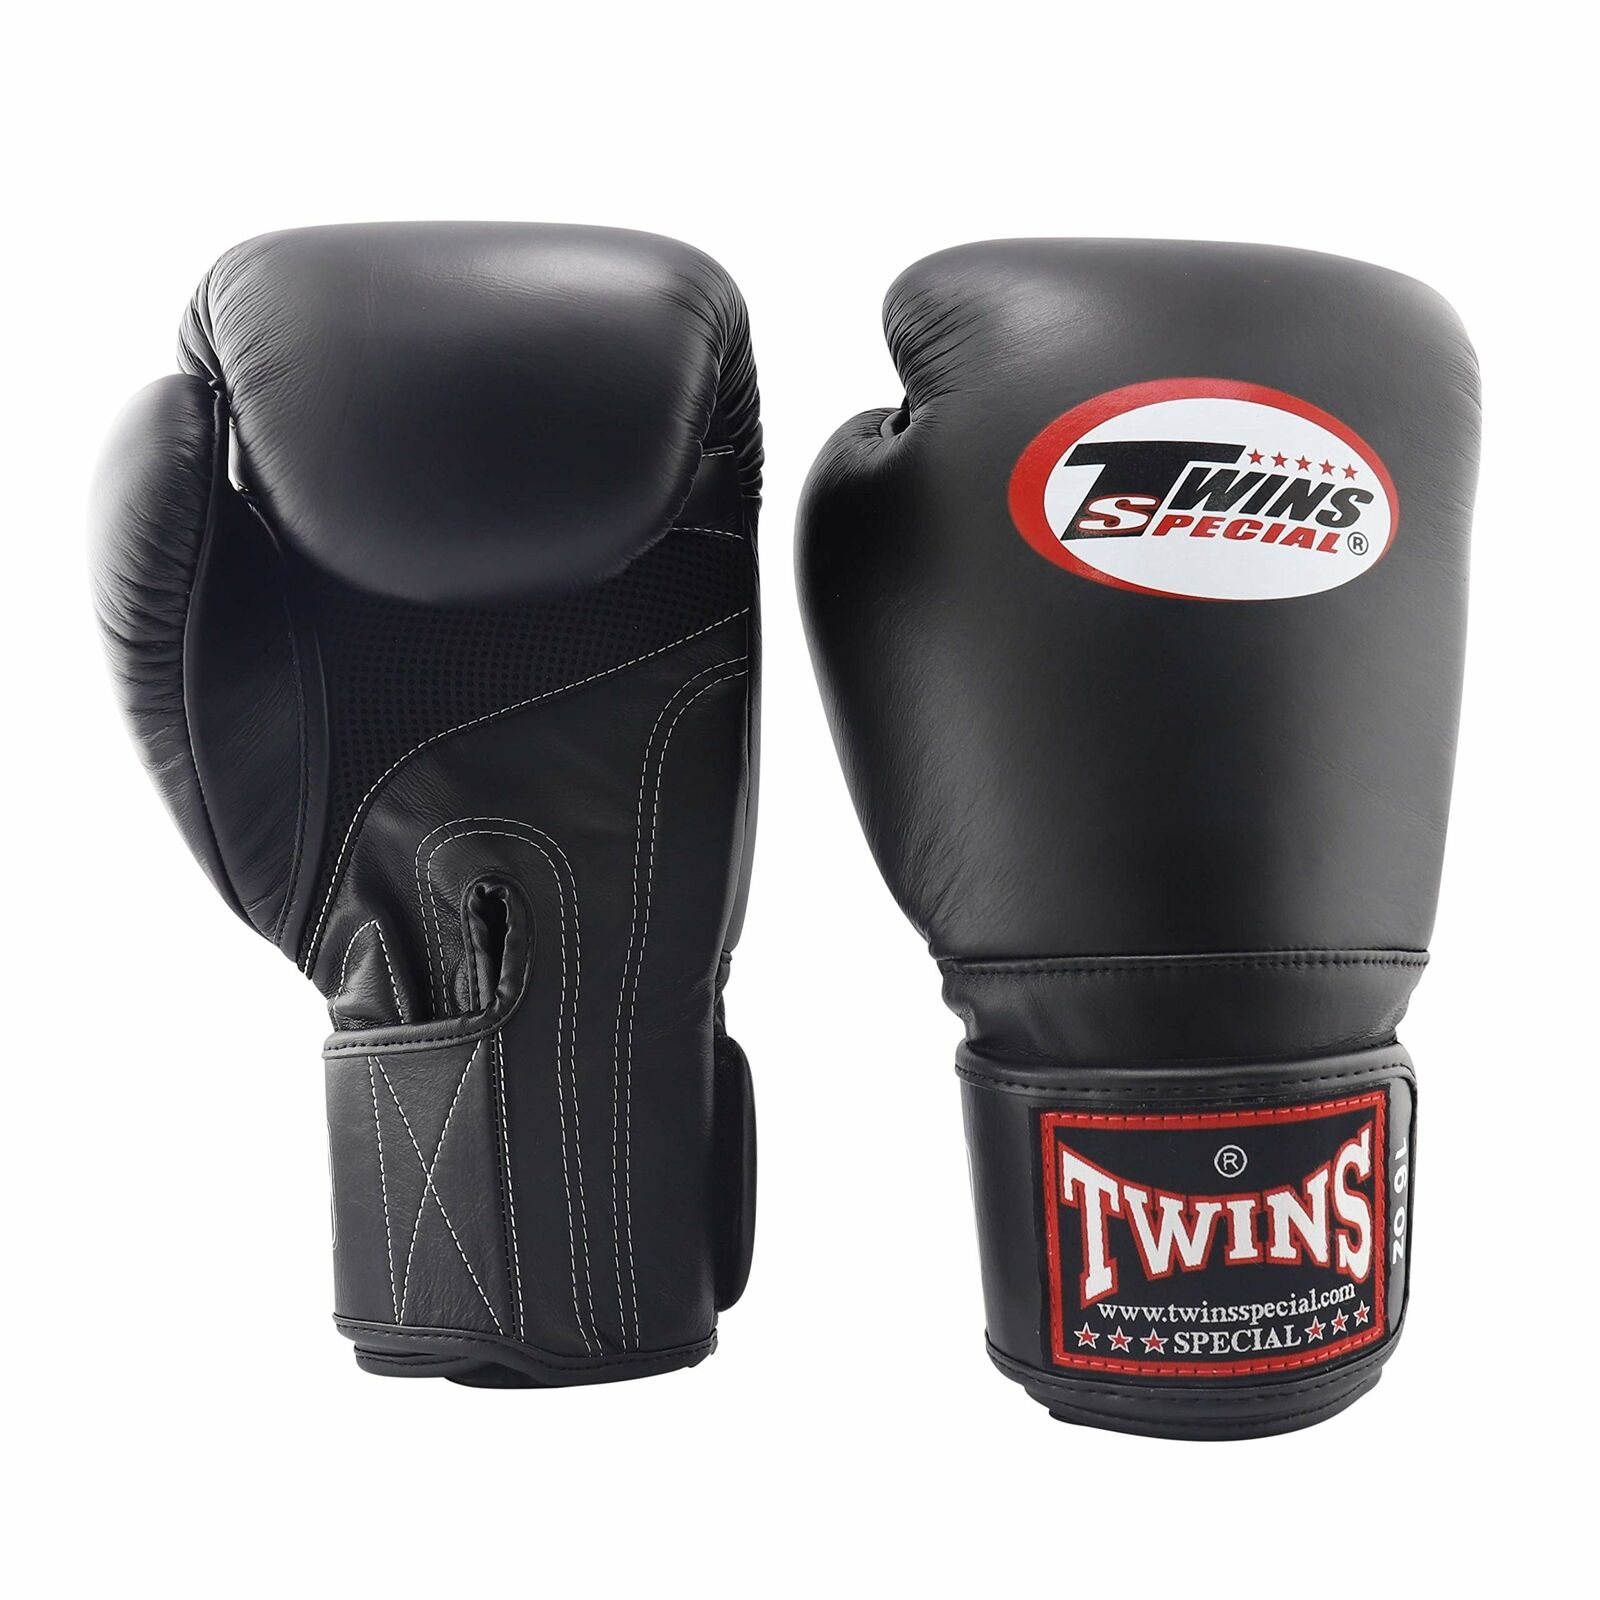 Details about  /Twins Air Flow White Boxing Gloves Muay Thai Sparring Gloves Kickboxing Gloves